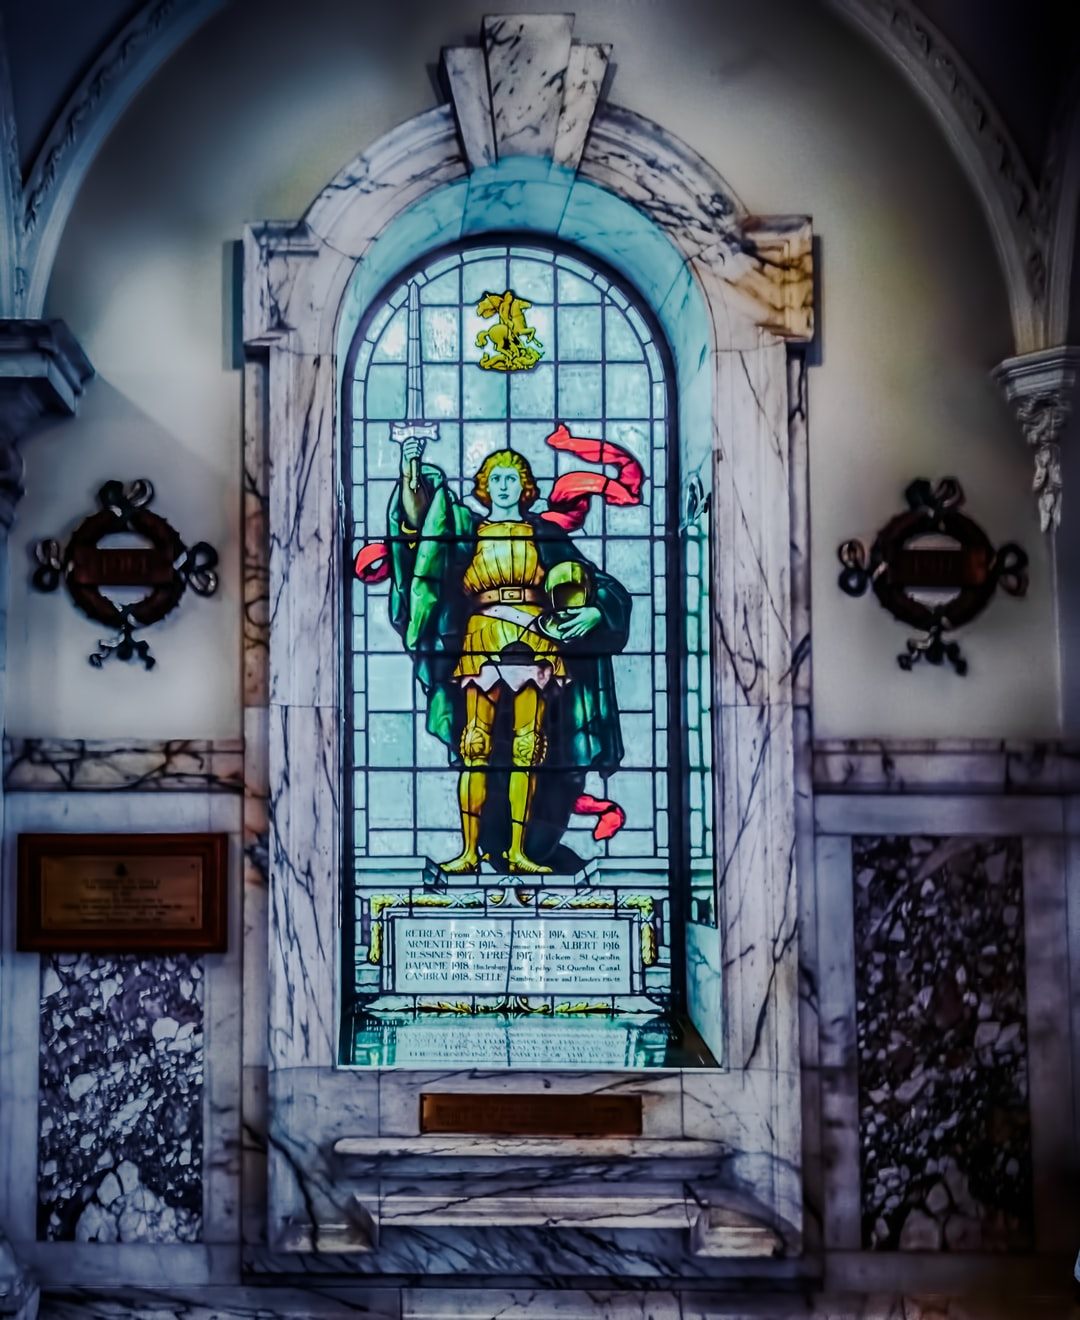 Stained-glass window commemorating the Irish fallen during the great battles of WWI.